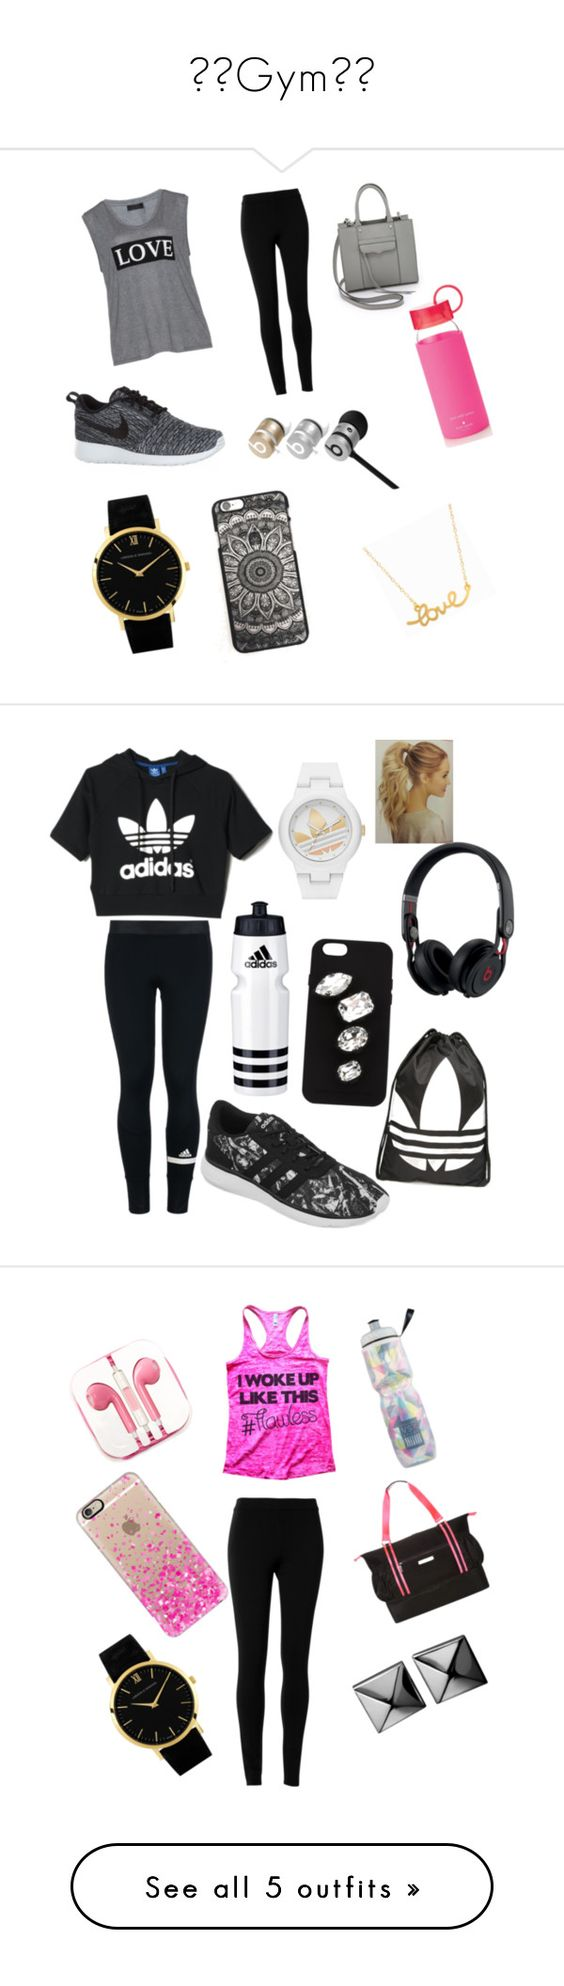 """""""❤❤Gym❤❤"""" by aneesakhan02 ❤ liked on Polyvore featuring Carmakoma, Max Studio, NIKE, Rebecca Minkoff, Beats by Dr. Dre, Larsson & Jennings, Minnie Grace, Kate Spade, adidas and STELLA McCARTNEY"""